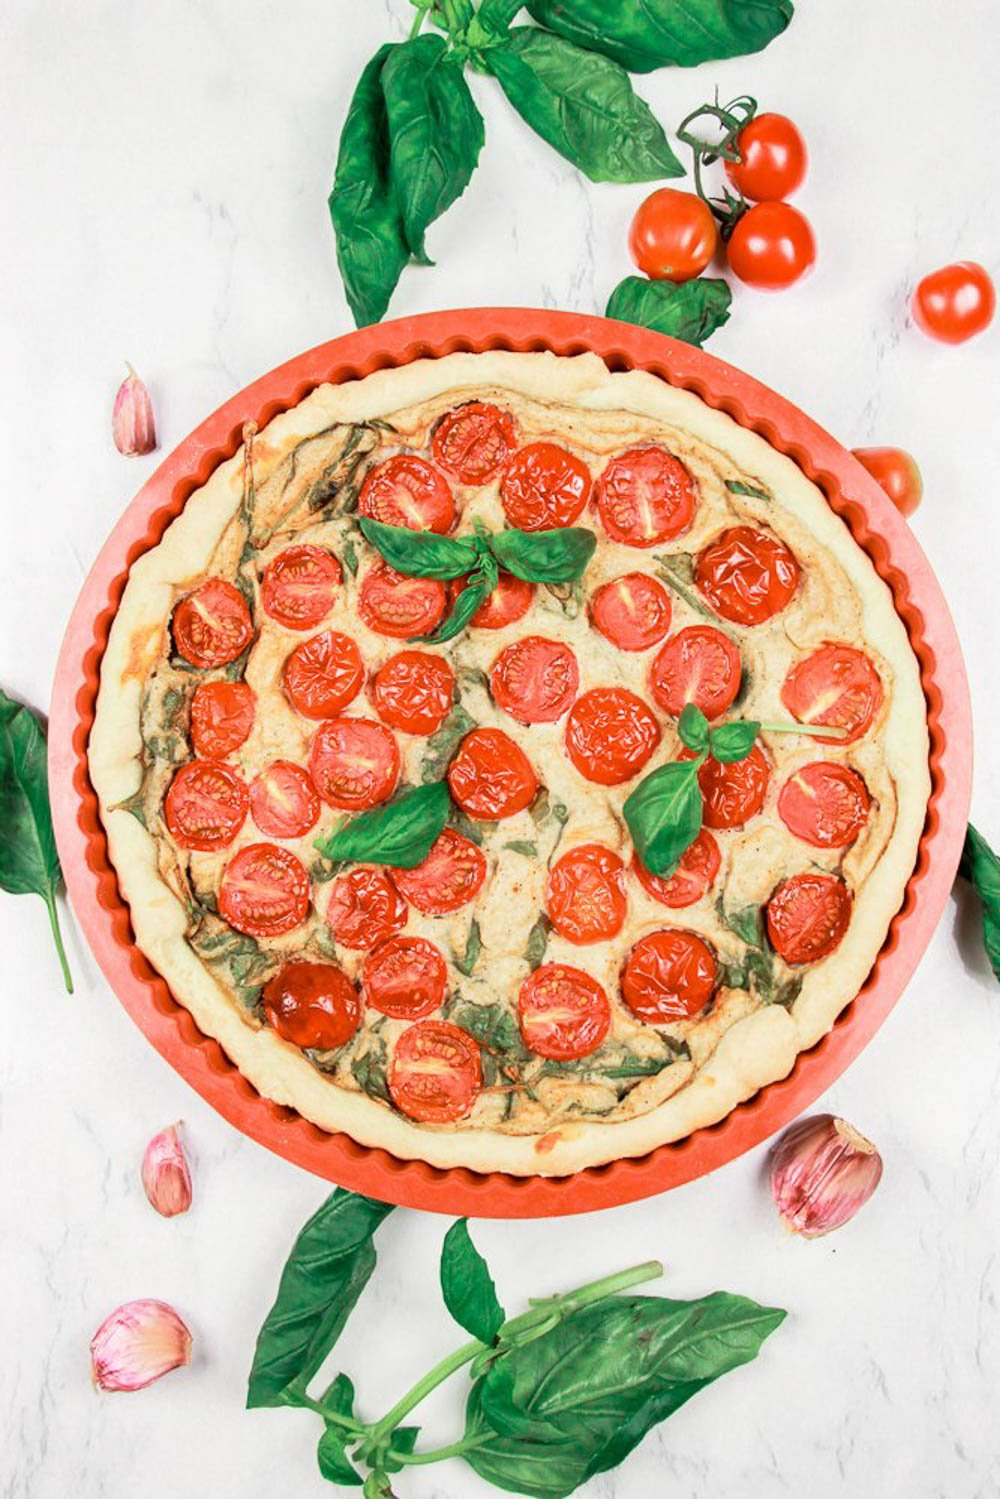 This picture shows the finished Healthy Spinach Tomato Quiche.